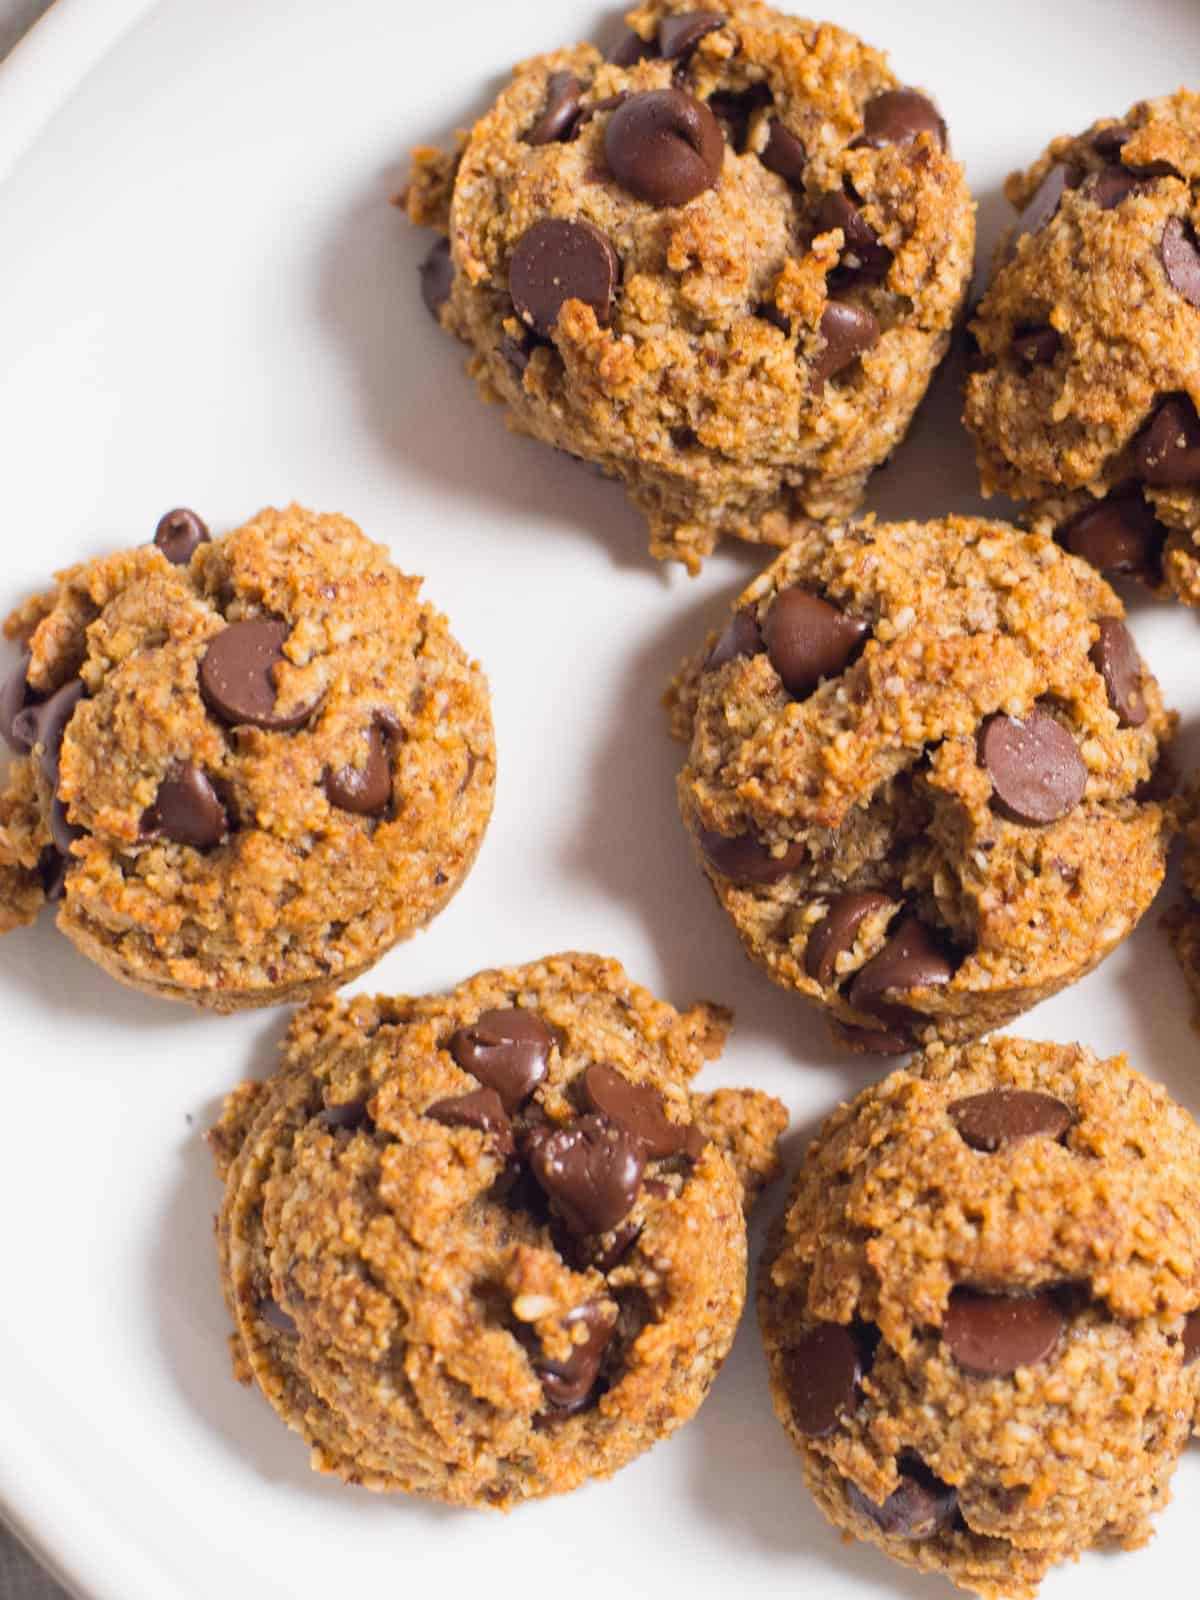 a plate of low carb, grain free chocolate chip cookies